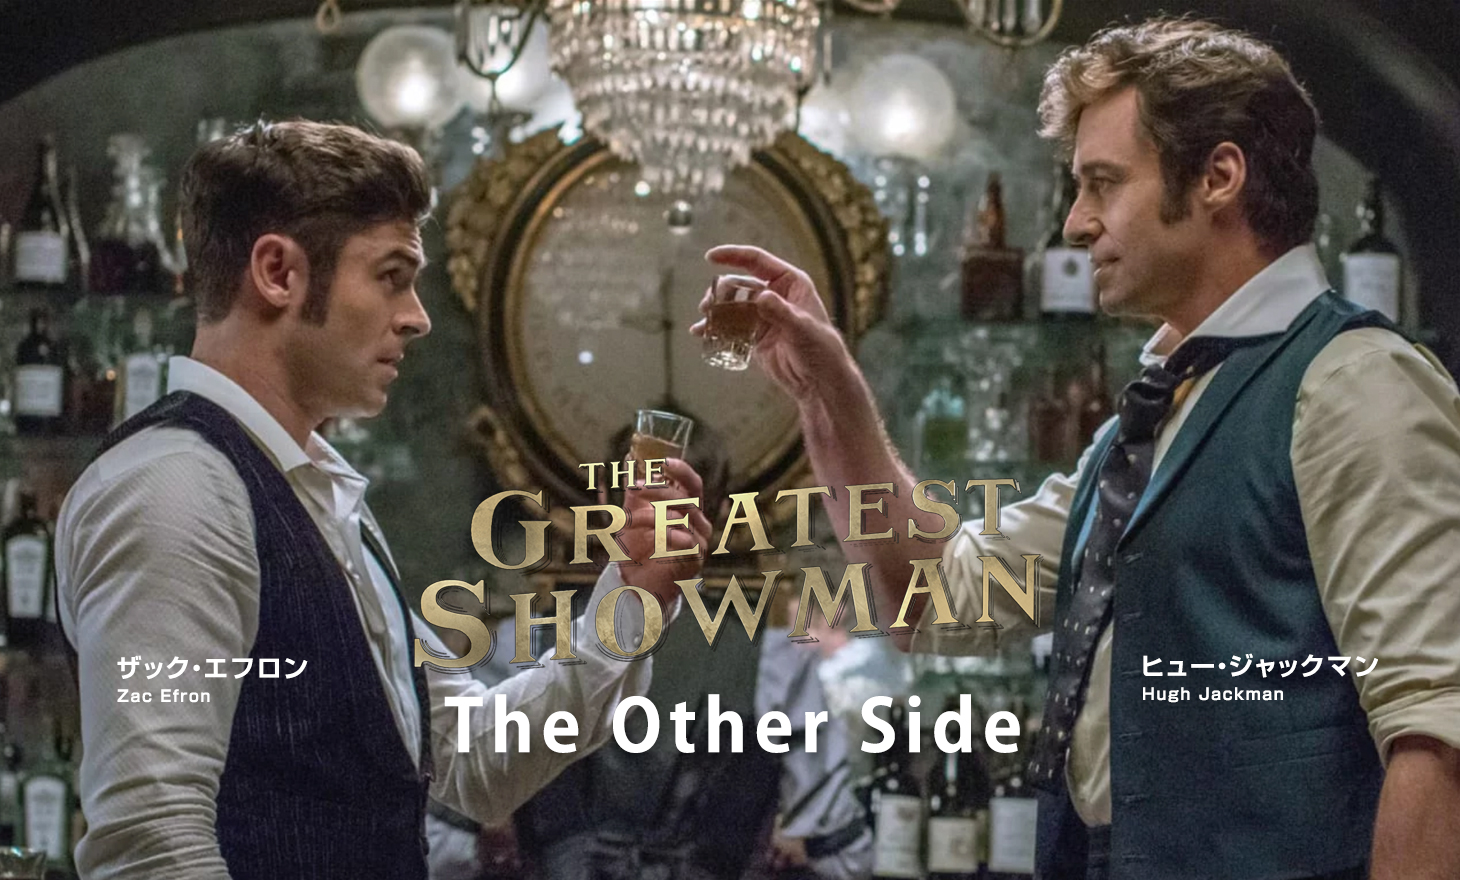 The Greatest Showman(グレイテスト・ショーマン):The Other Side